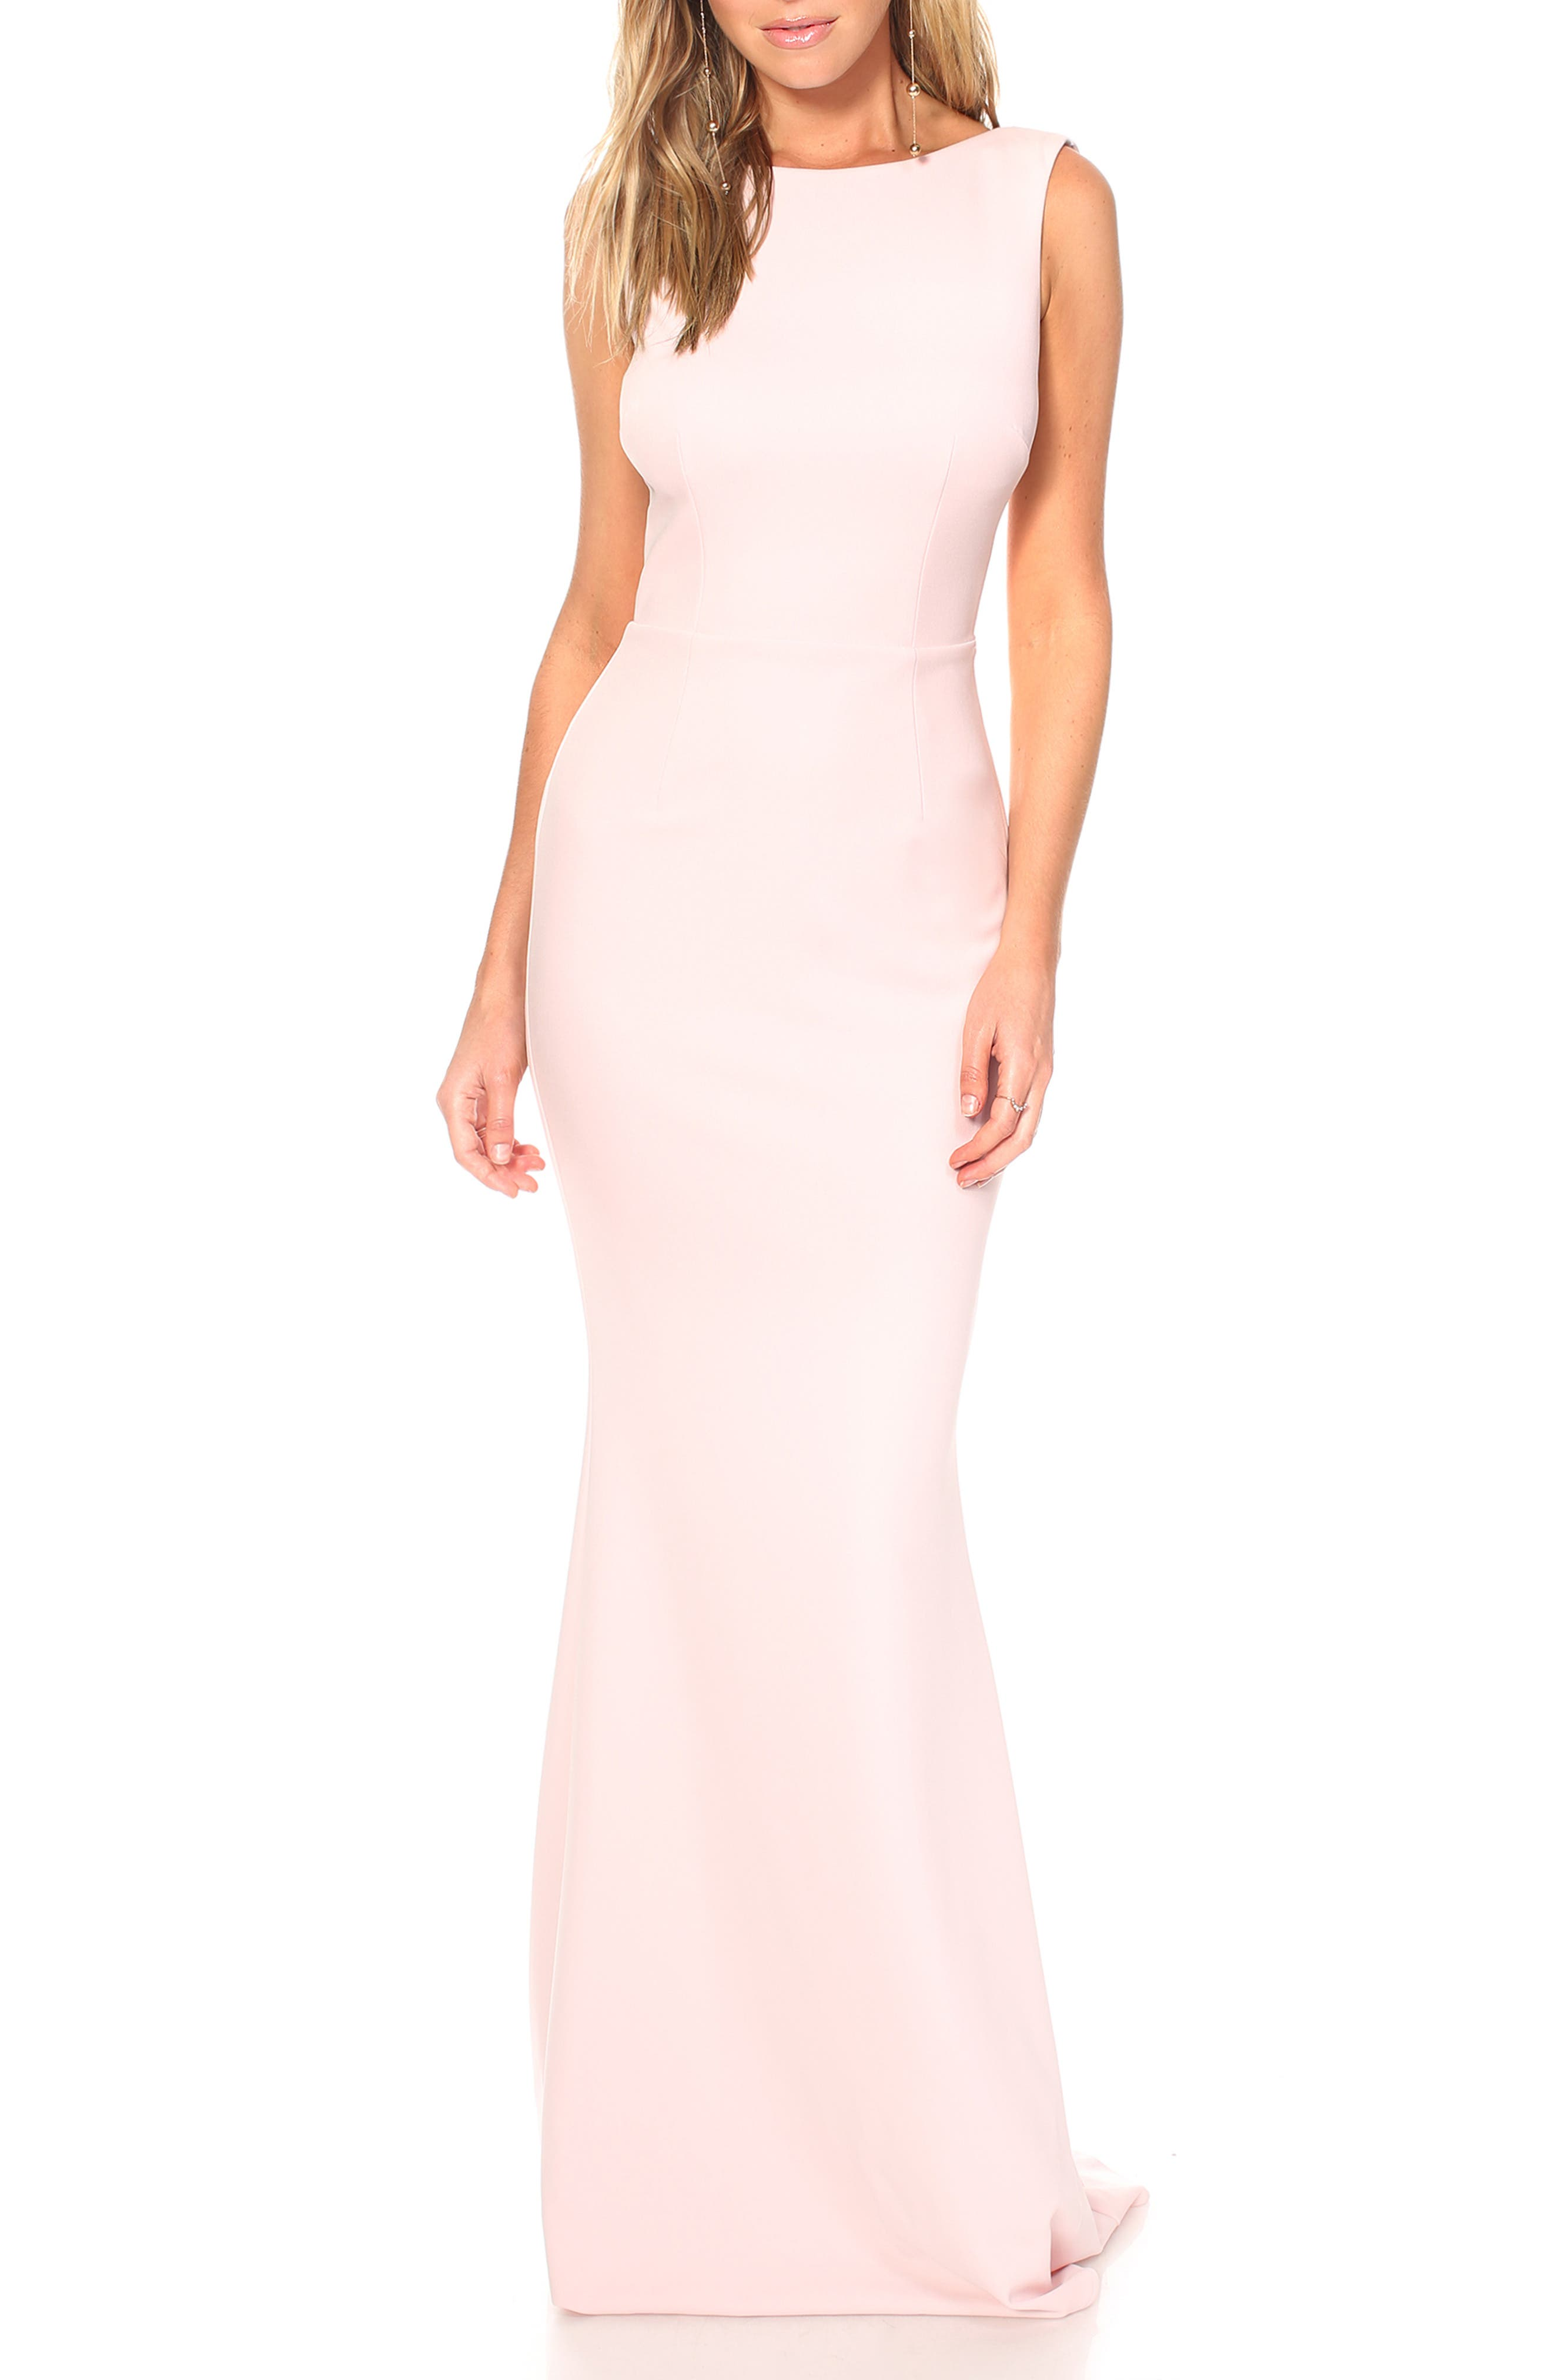 Katie May Vionnet Drape Back Crepe Gown, Pink